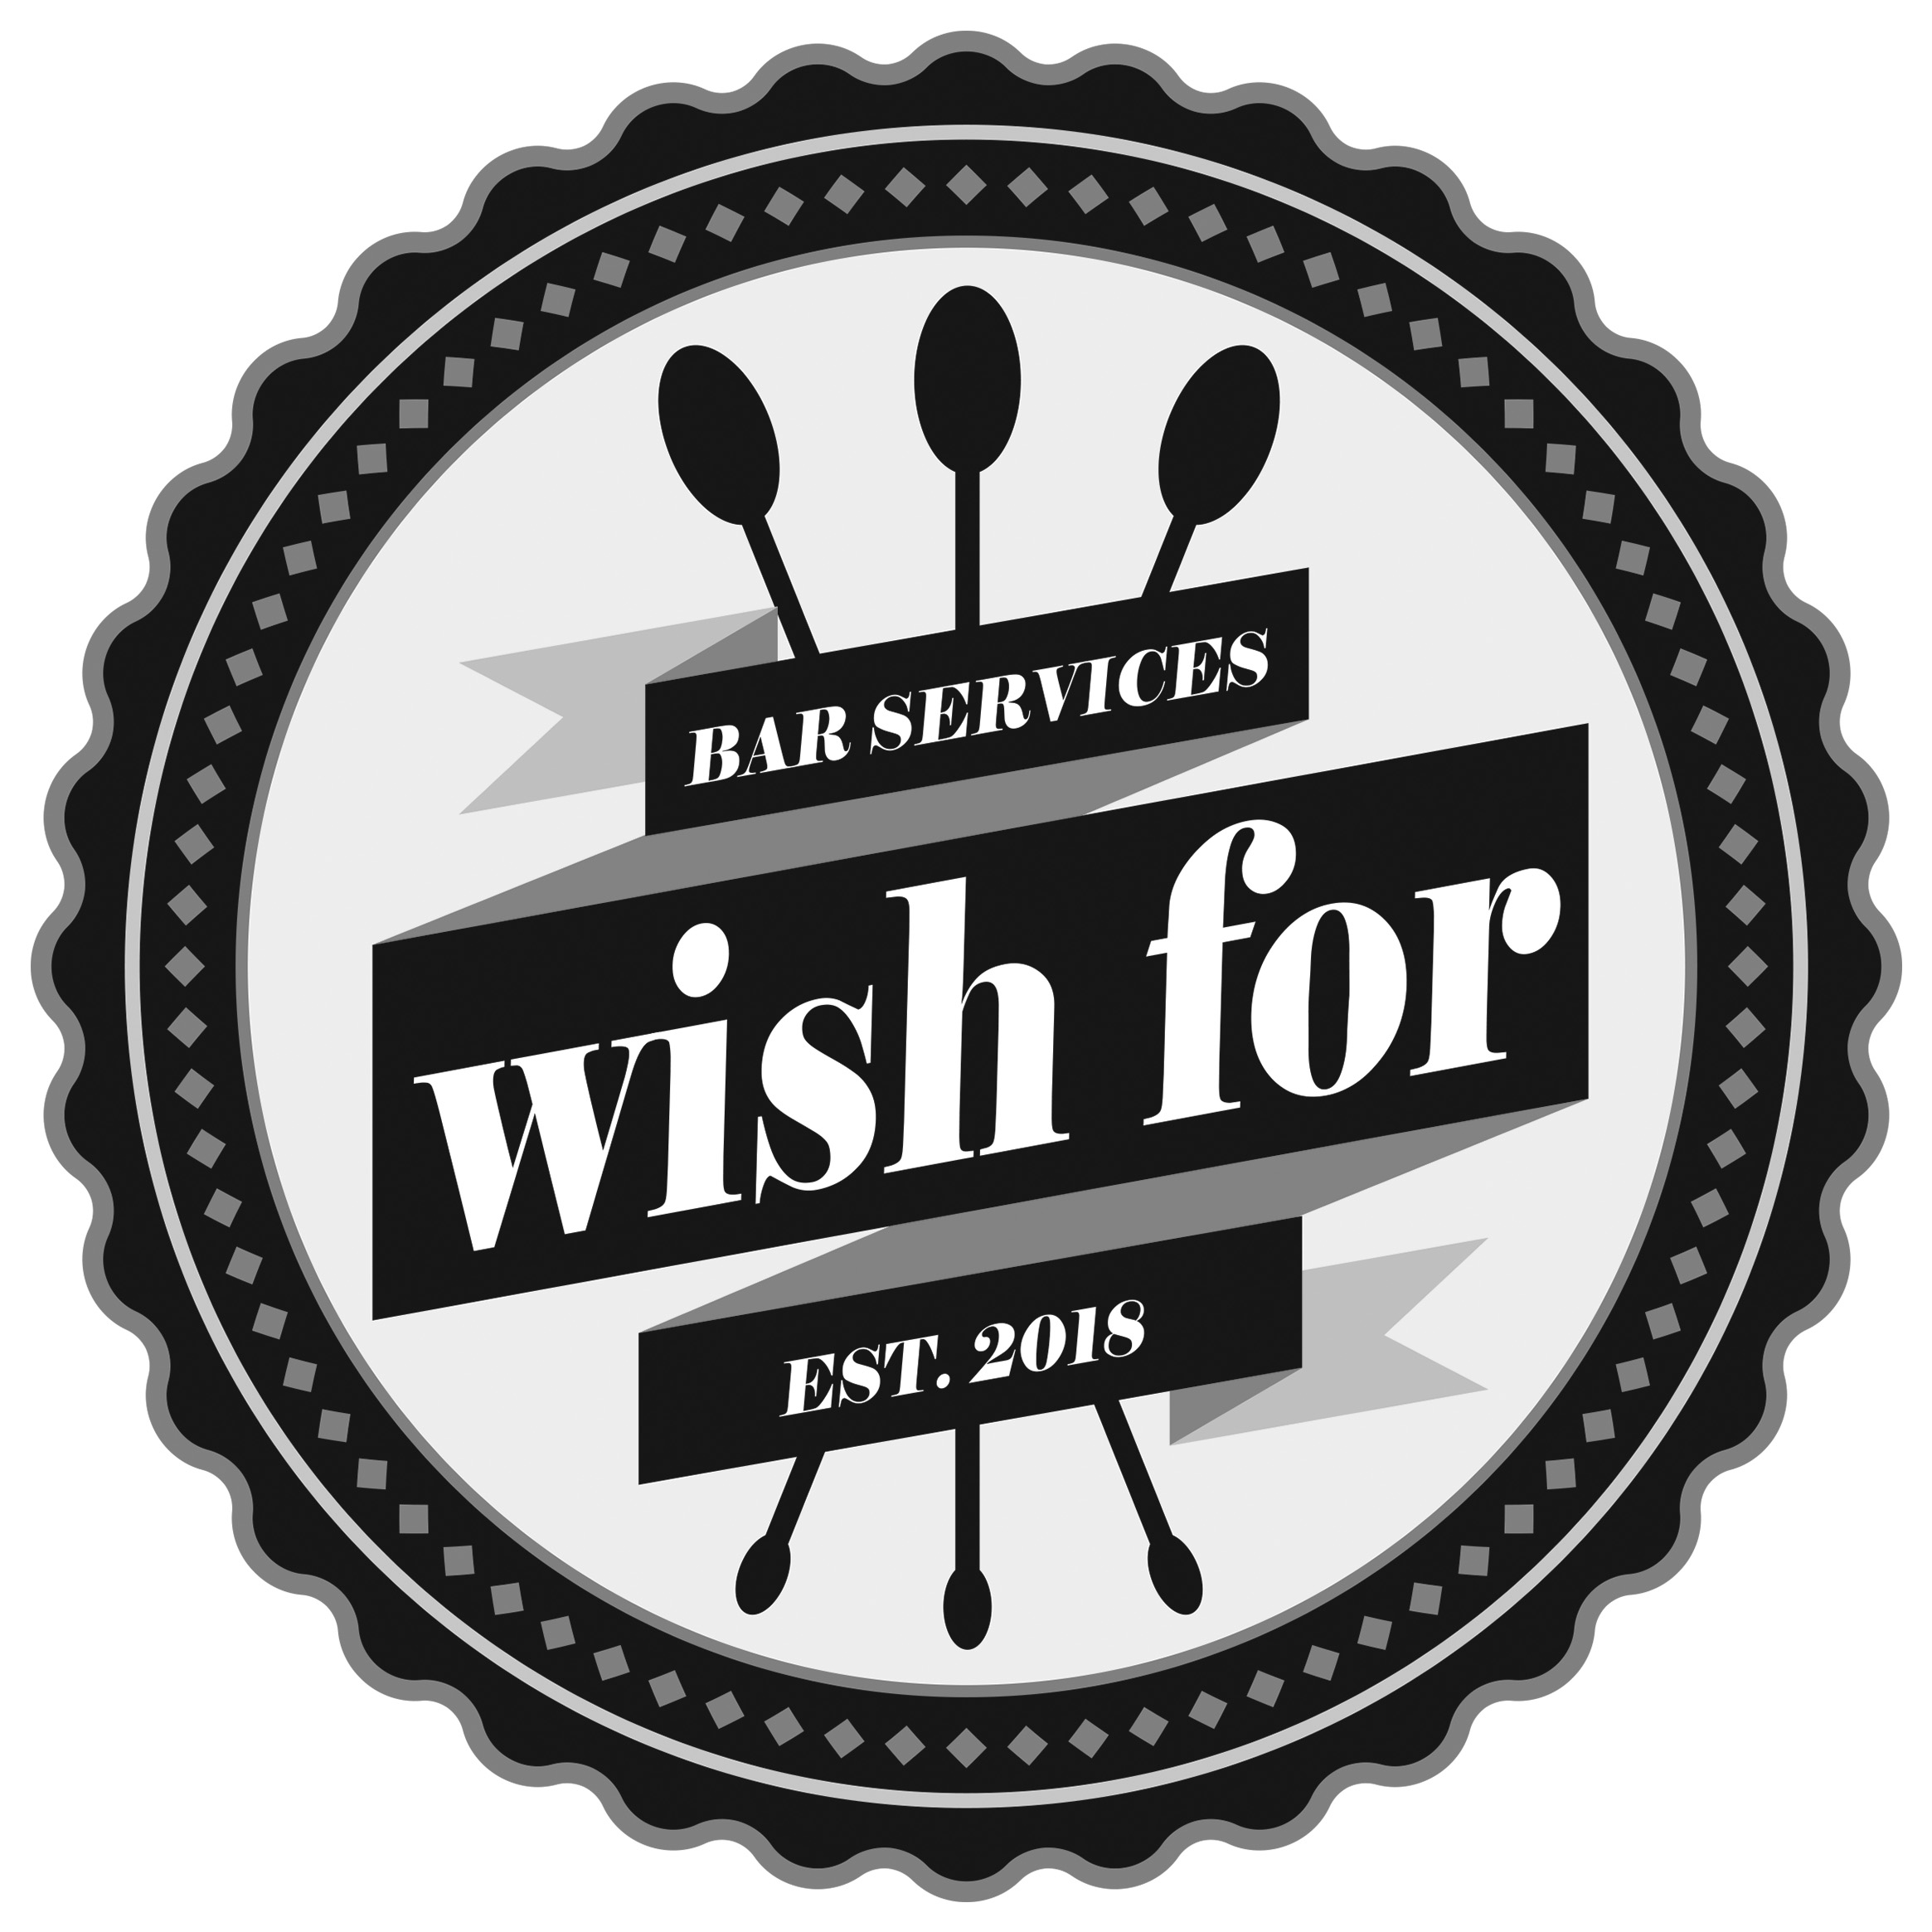 Wishfor bar catering & services - Γεωργιος Κουρτιδης, Bar Catering